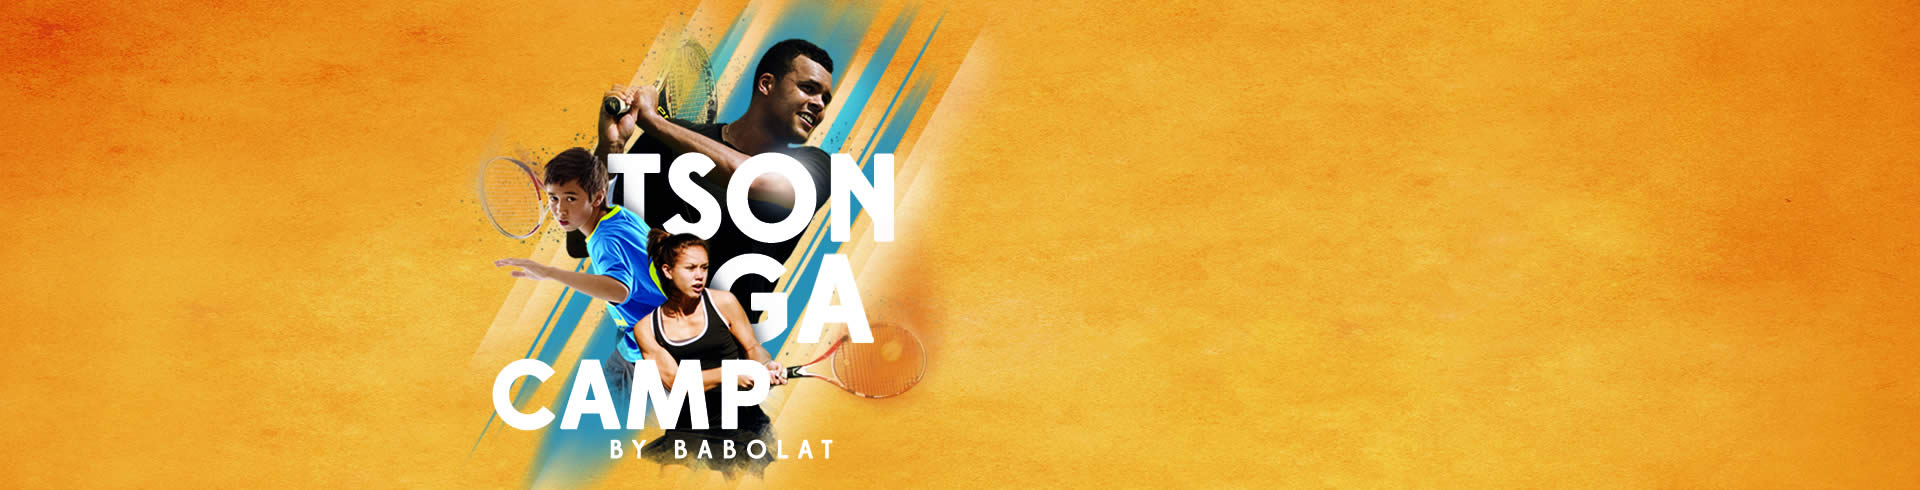 tsonga-camp-header-1920x490